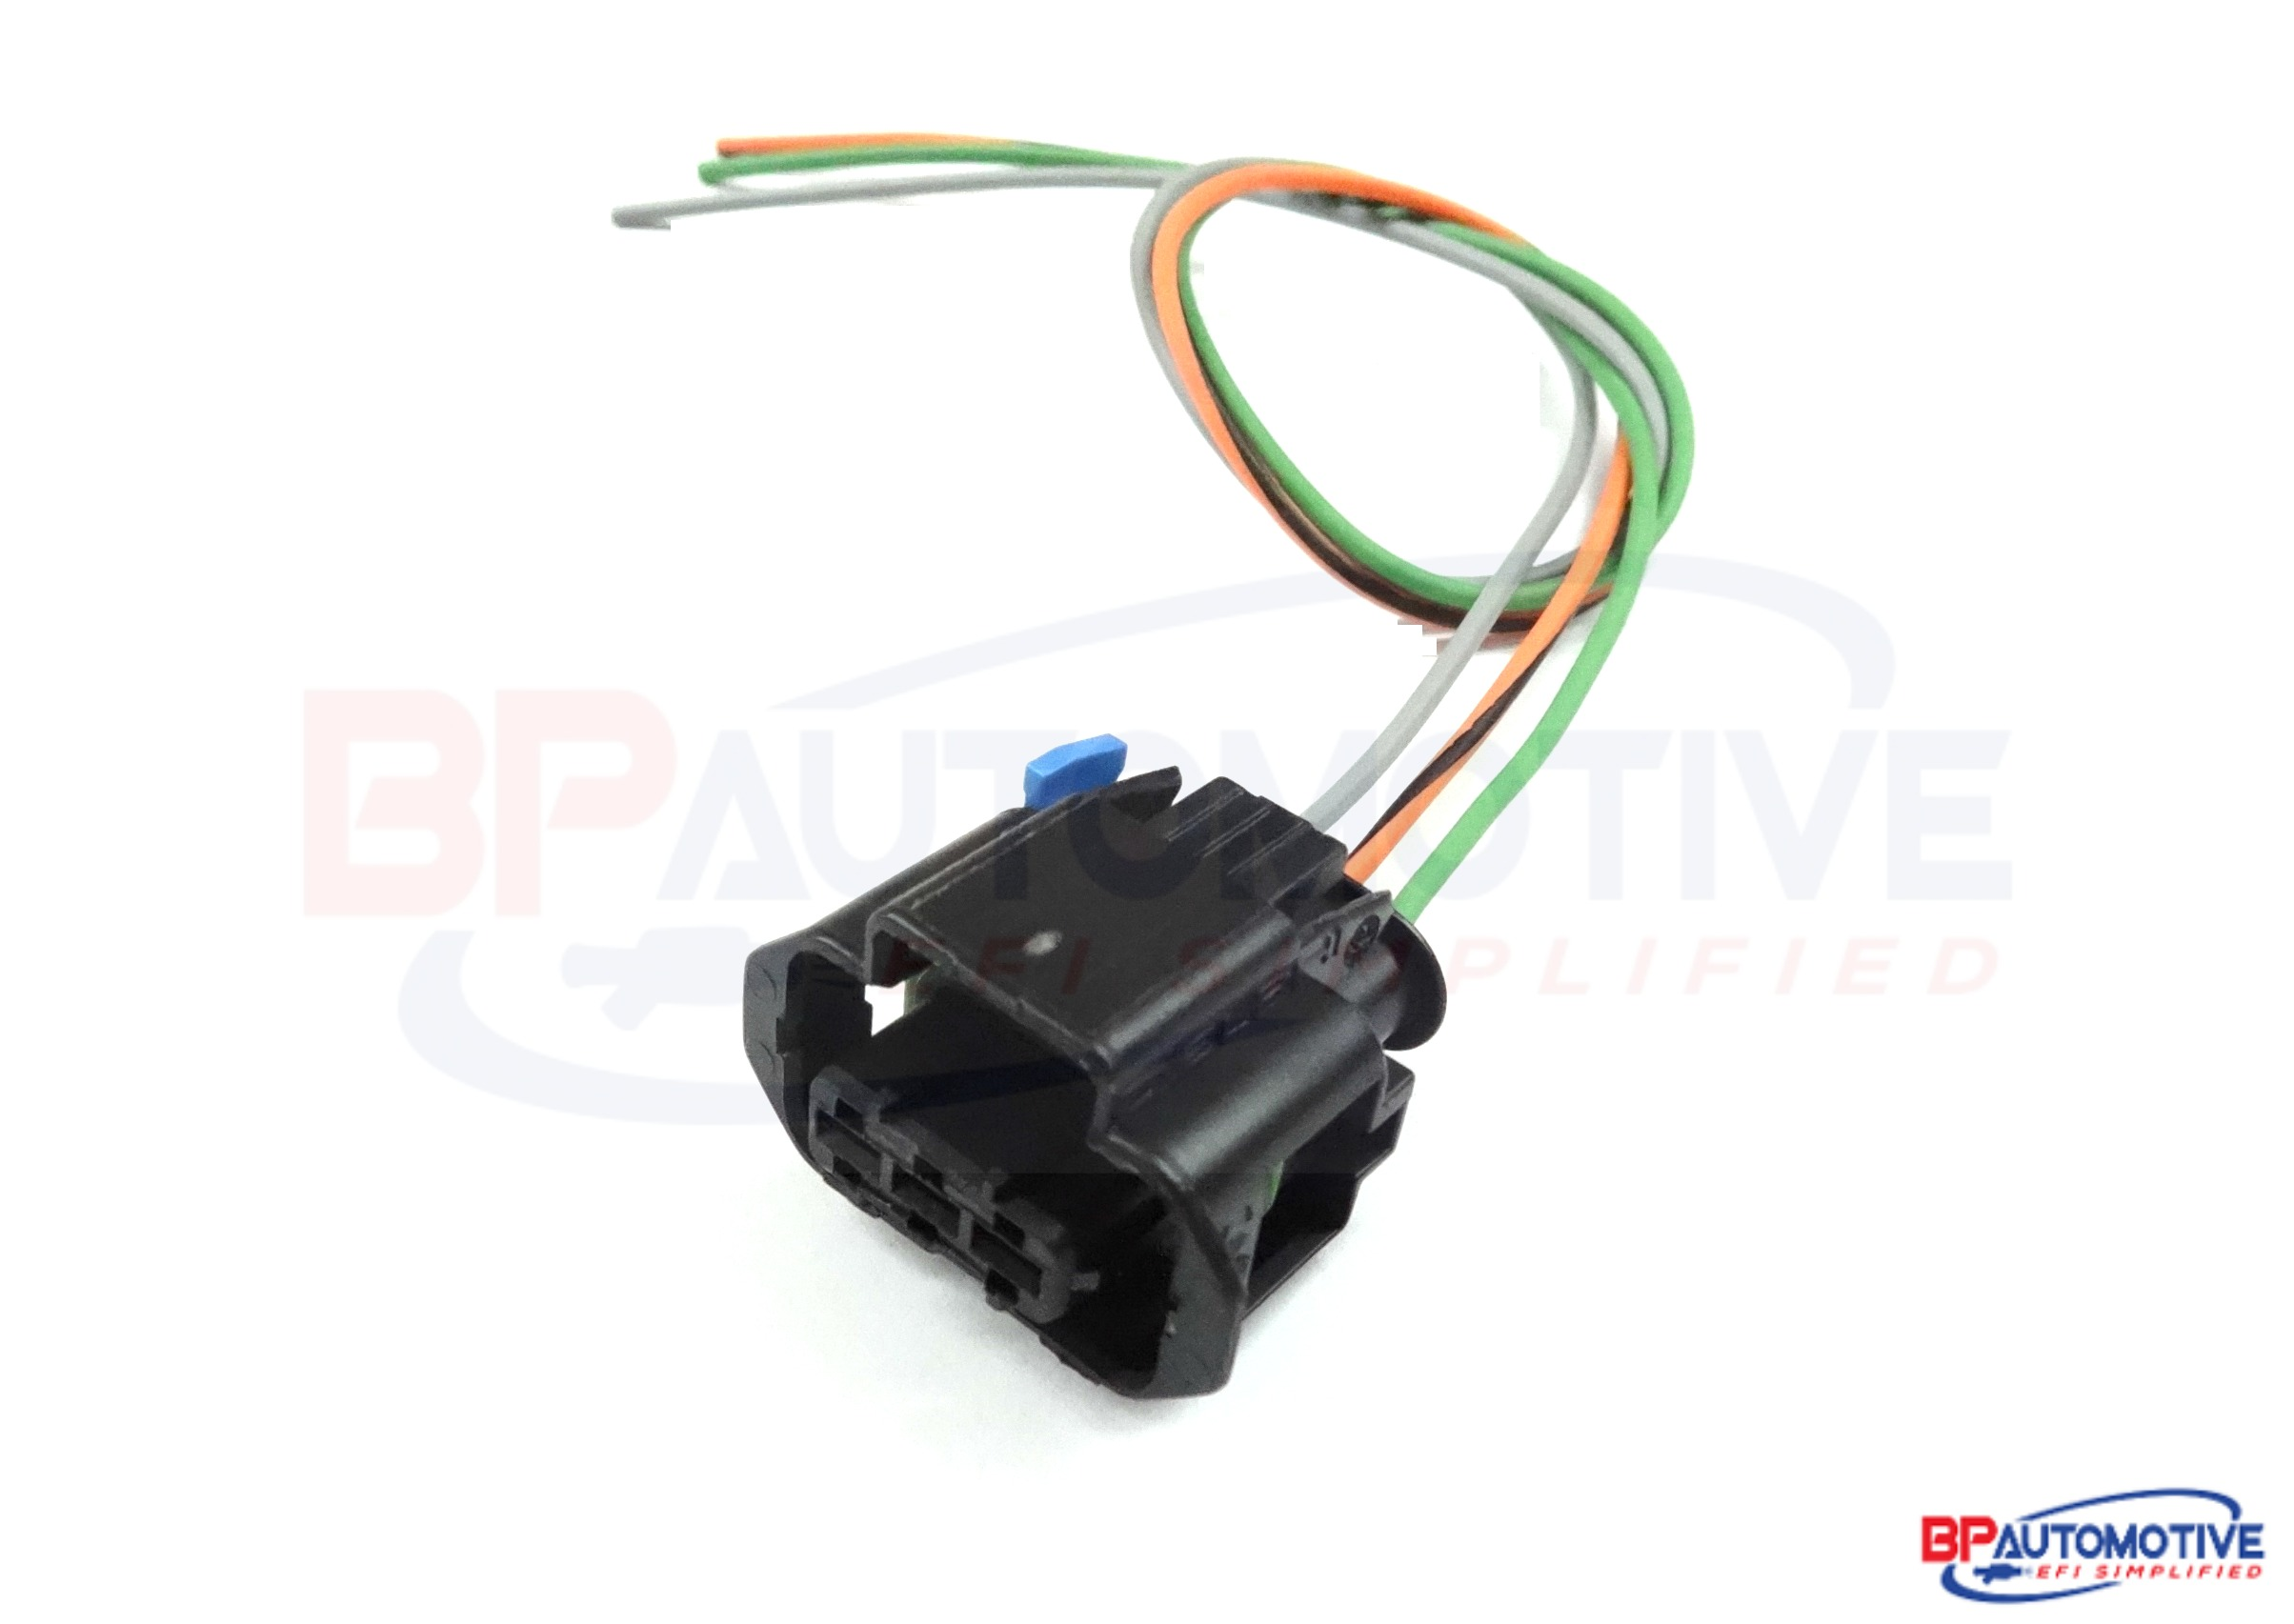 LS3 MAP Pigtail Watermark 2007 2014 gen iv ls3 based 4 8, 5 3, 6 0, 6 2 6l80e ls3 standalone ls3 map sensor wiring diagram at creativeand.co